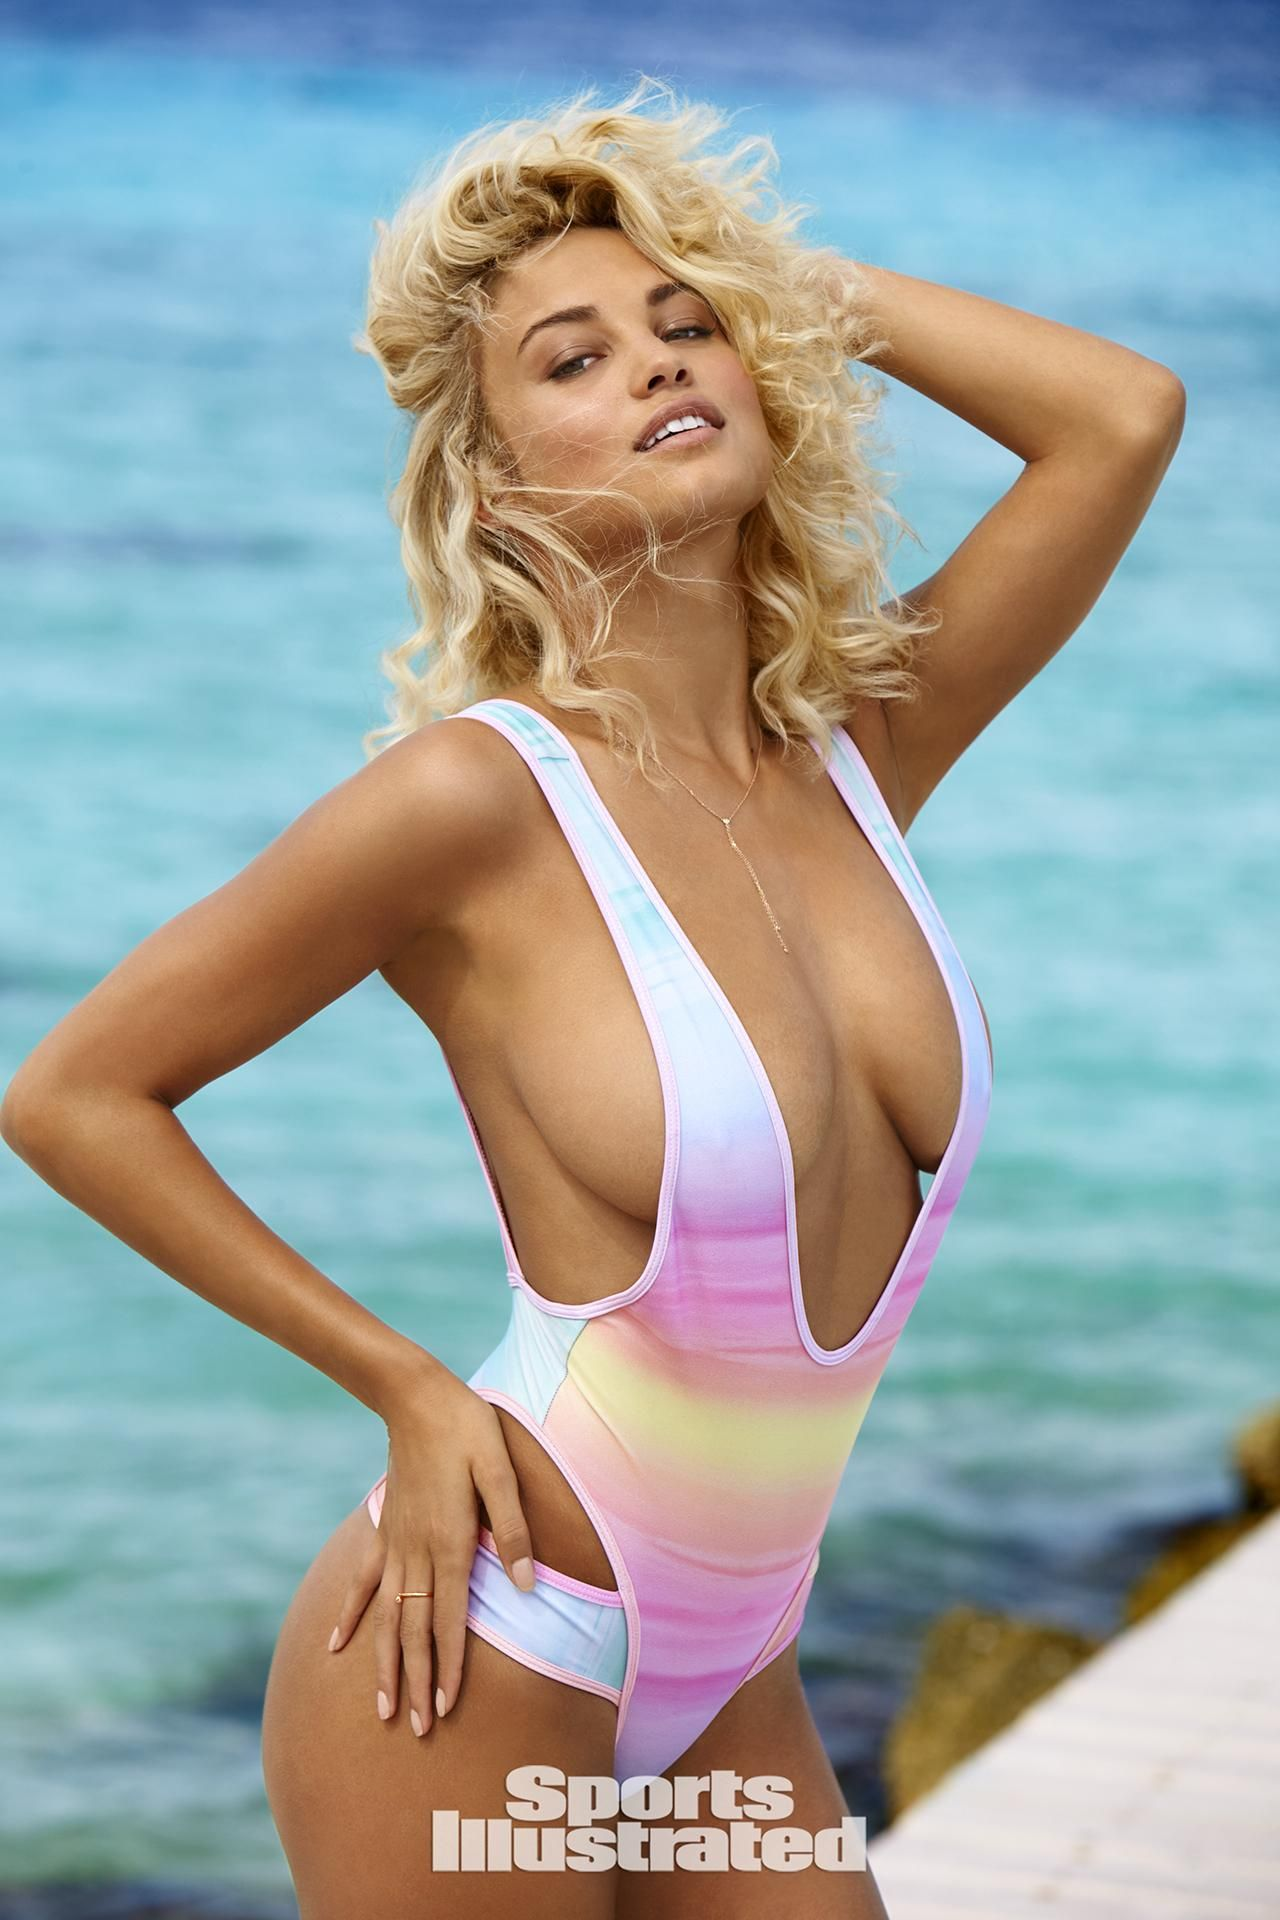 Cleavage Rose Bertram nudes (78 photos), Tits, Leaked, Selfie, underwear 2017